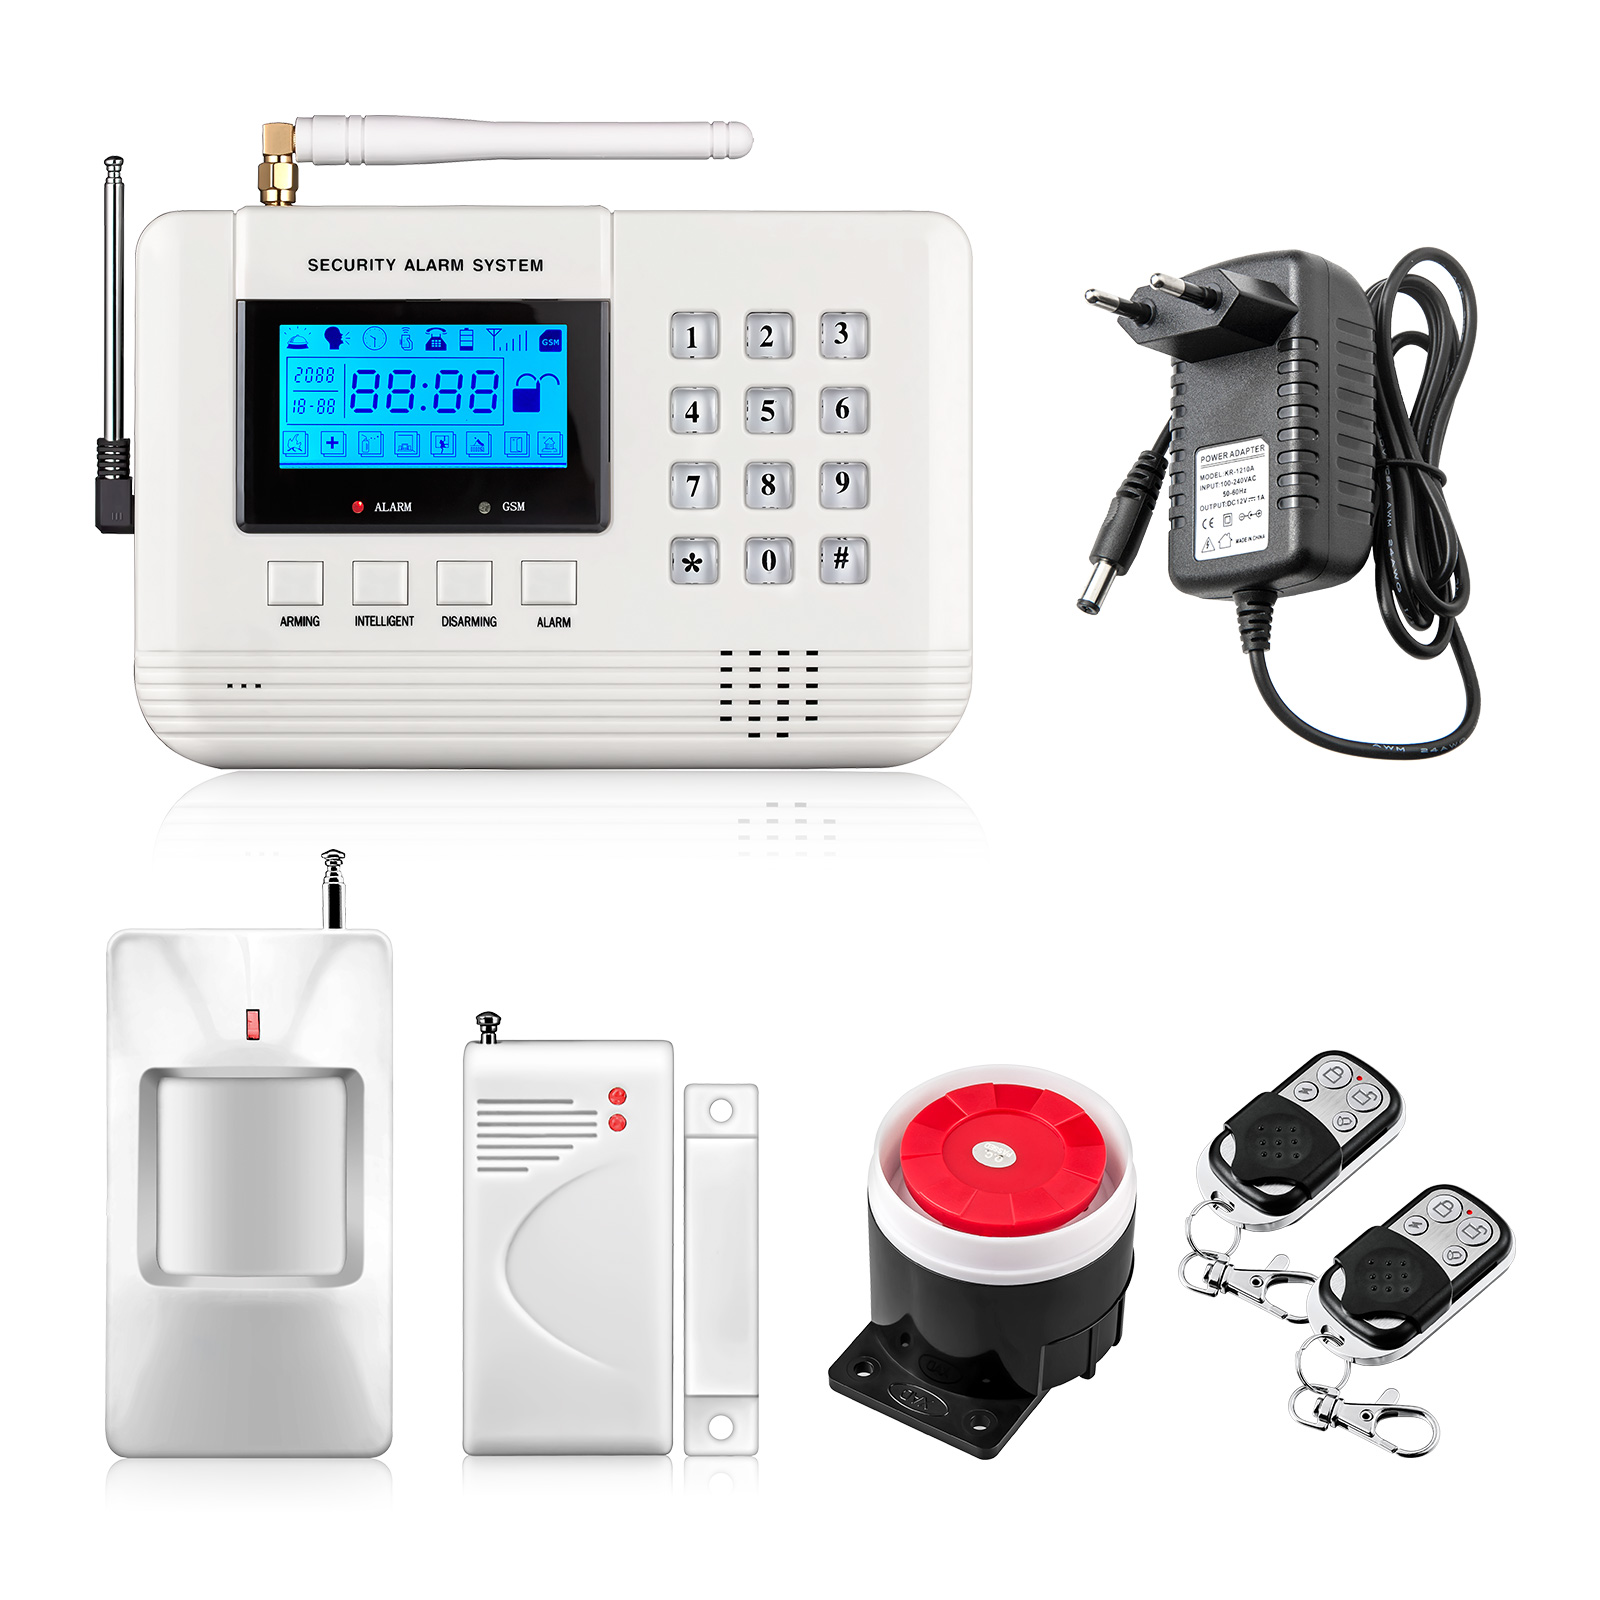 New arrival LCD Screen 433Mhz Remote Control Home Alarm SMS GSM PSTN Dual Network Home Security gsm Alarm System 16 ports 3g sms modem bulk sms sending 3g modem pool sim5360 new module bulk sms sending device